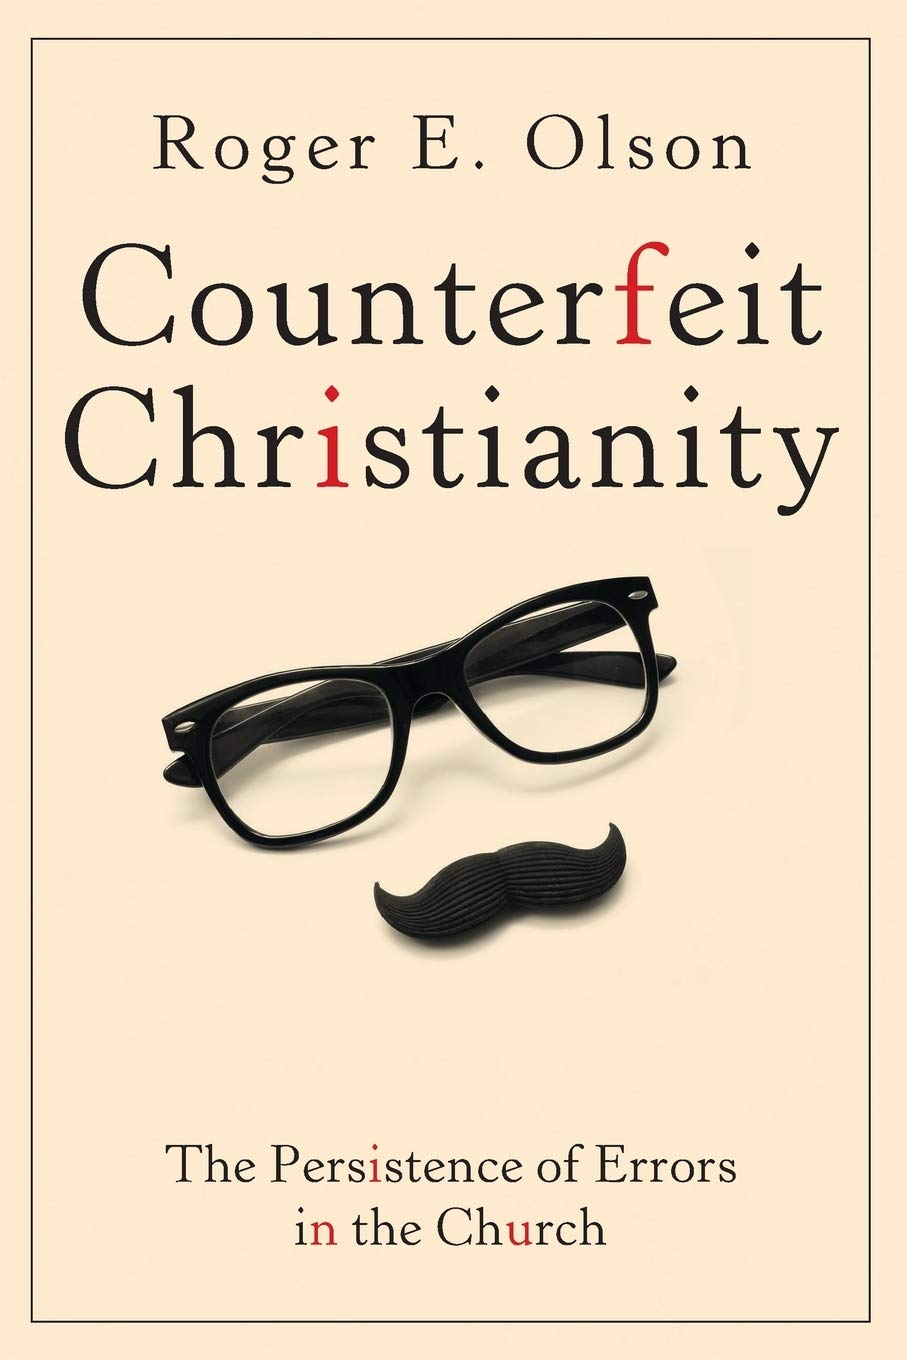 Amazon.com: Counterfeit Christianity: The Persistence of Errors in ...